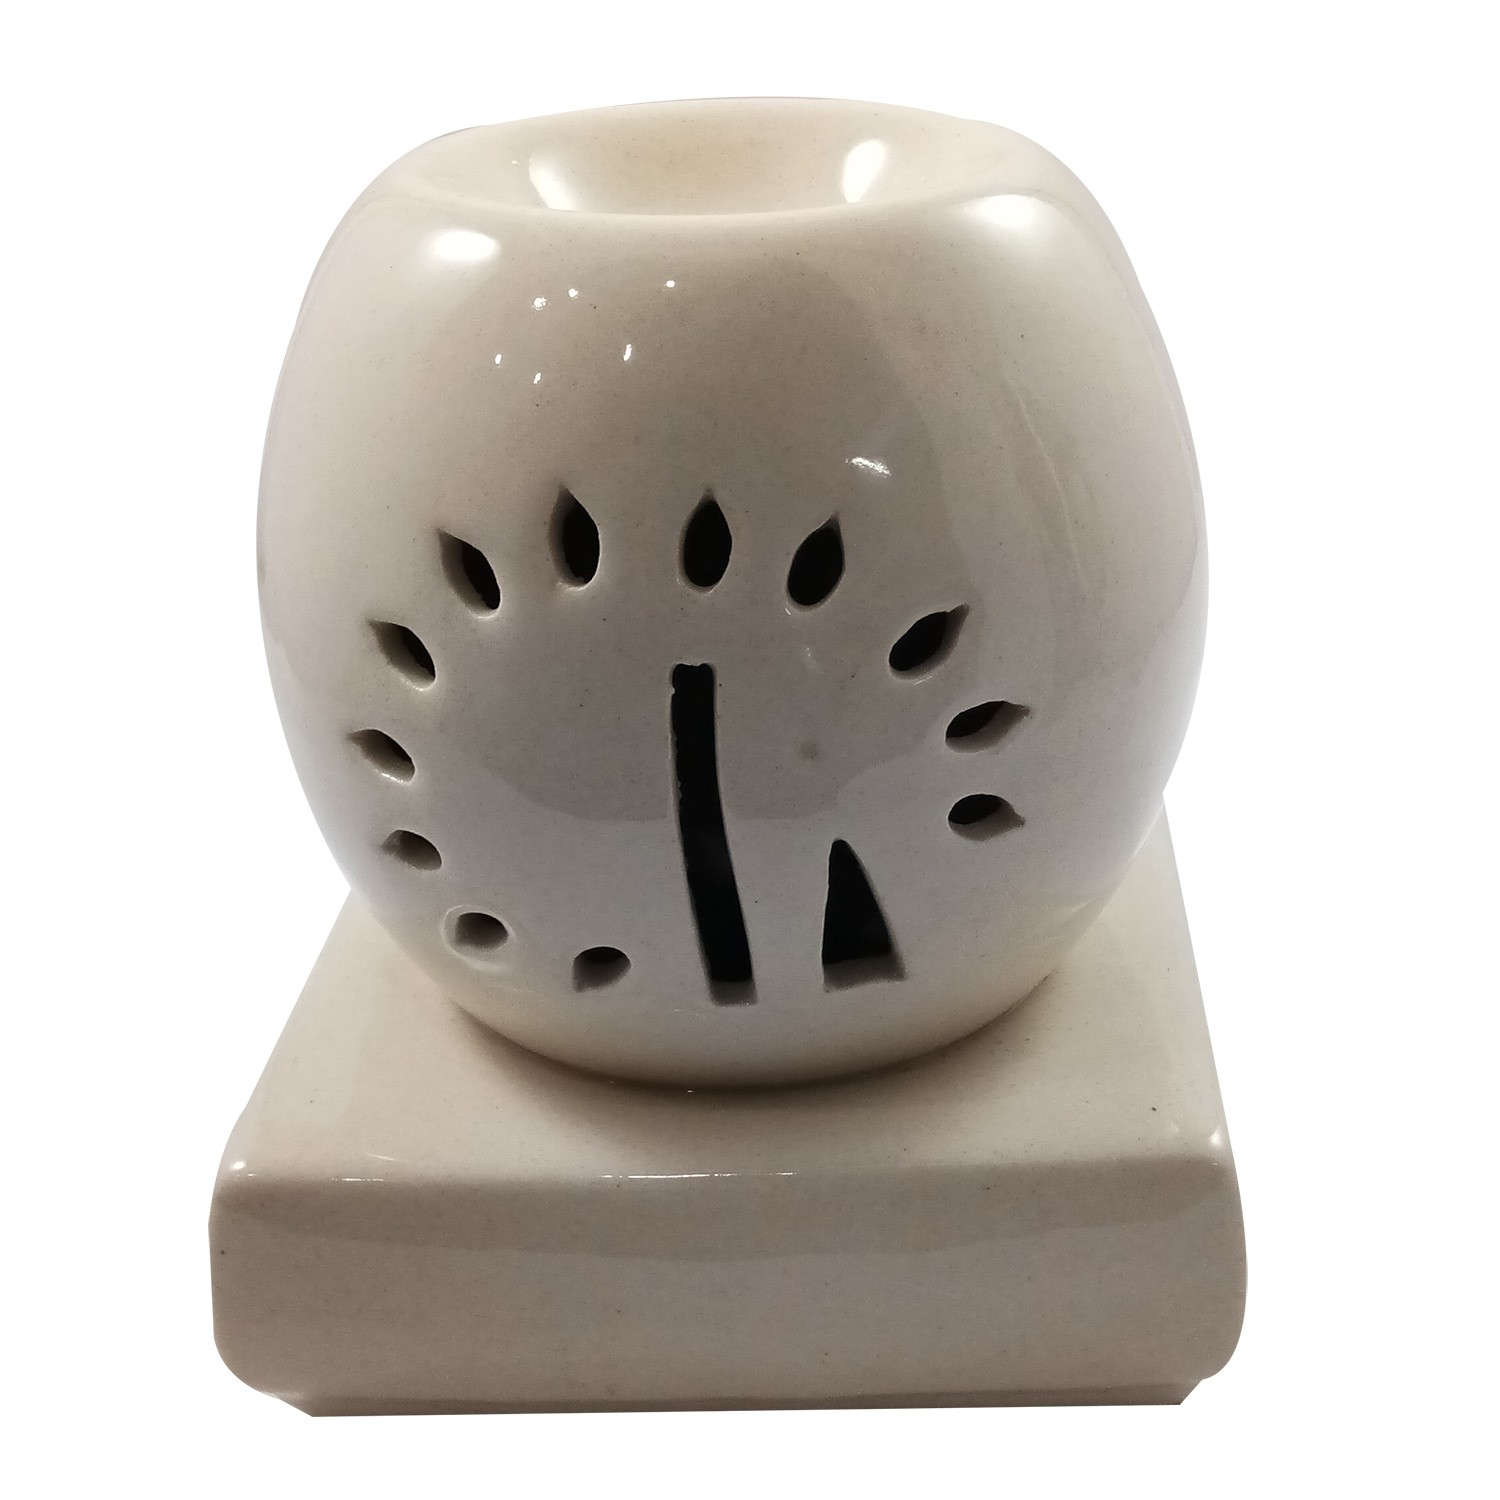 Handmade Ceramic White Ethnic Electric Aroma Diffuser Oil Burner | Good Quality Aromatherapy Incense Oil Warmer Qty 1